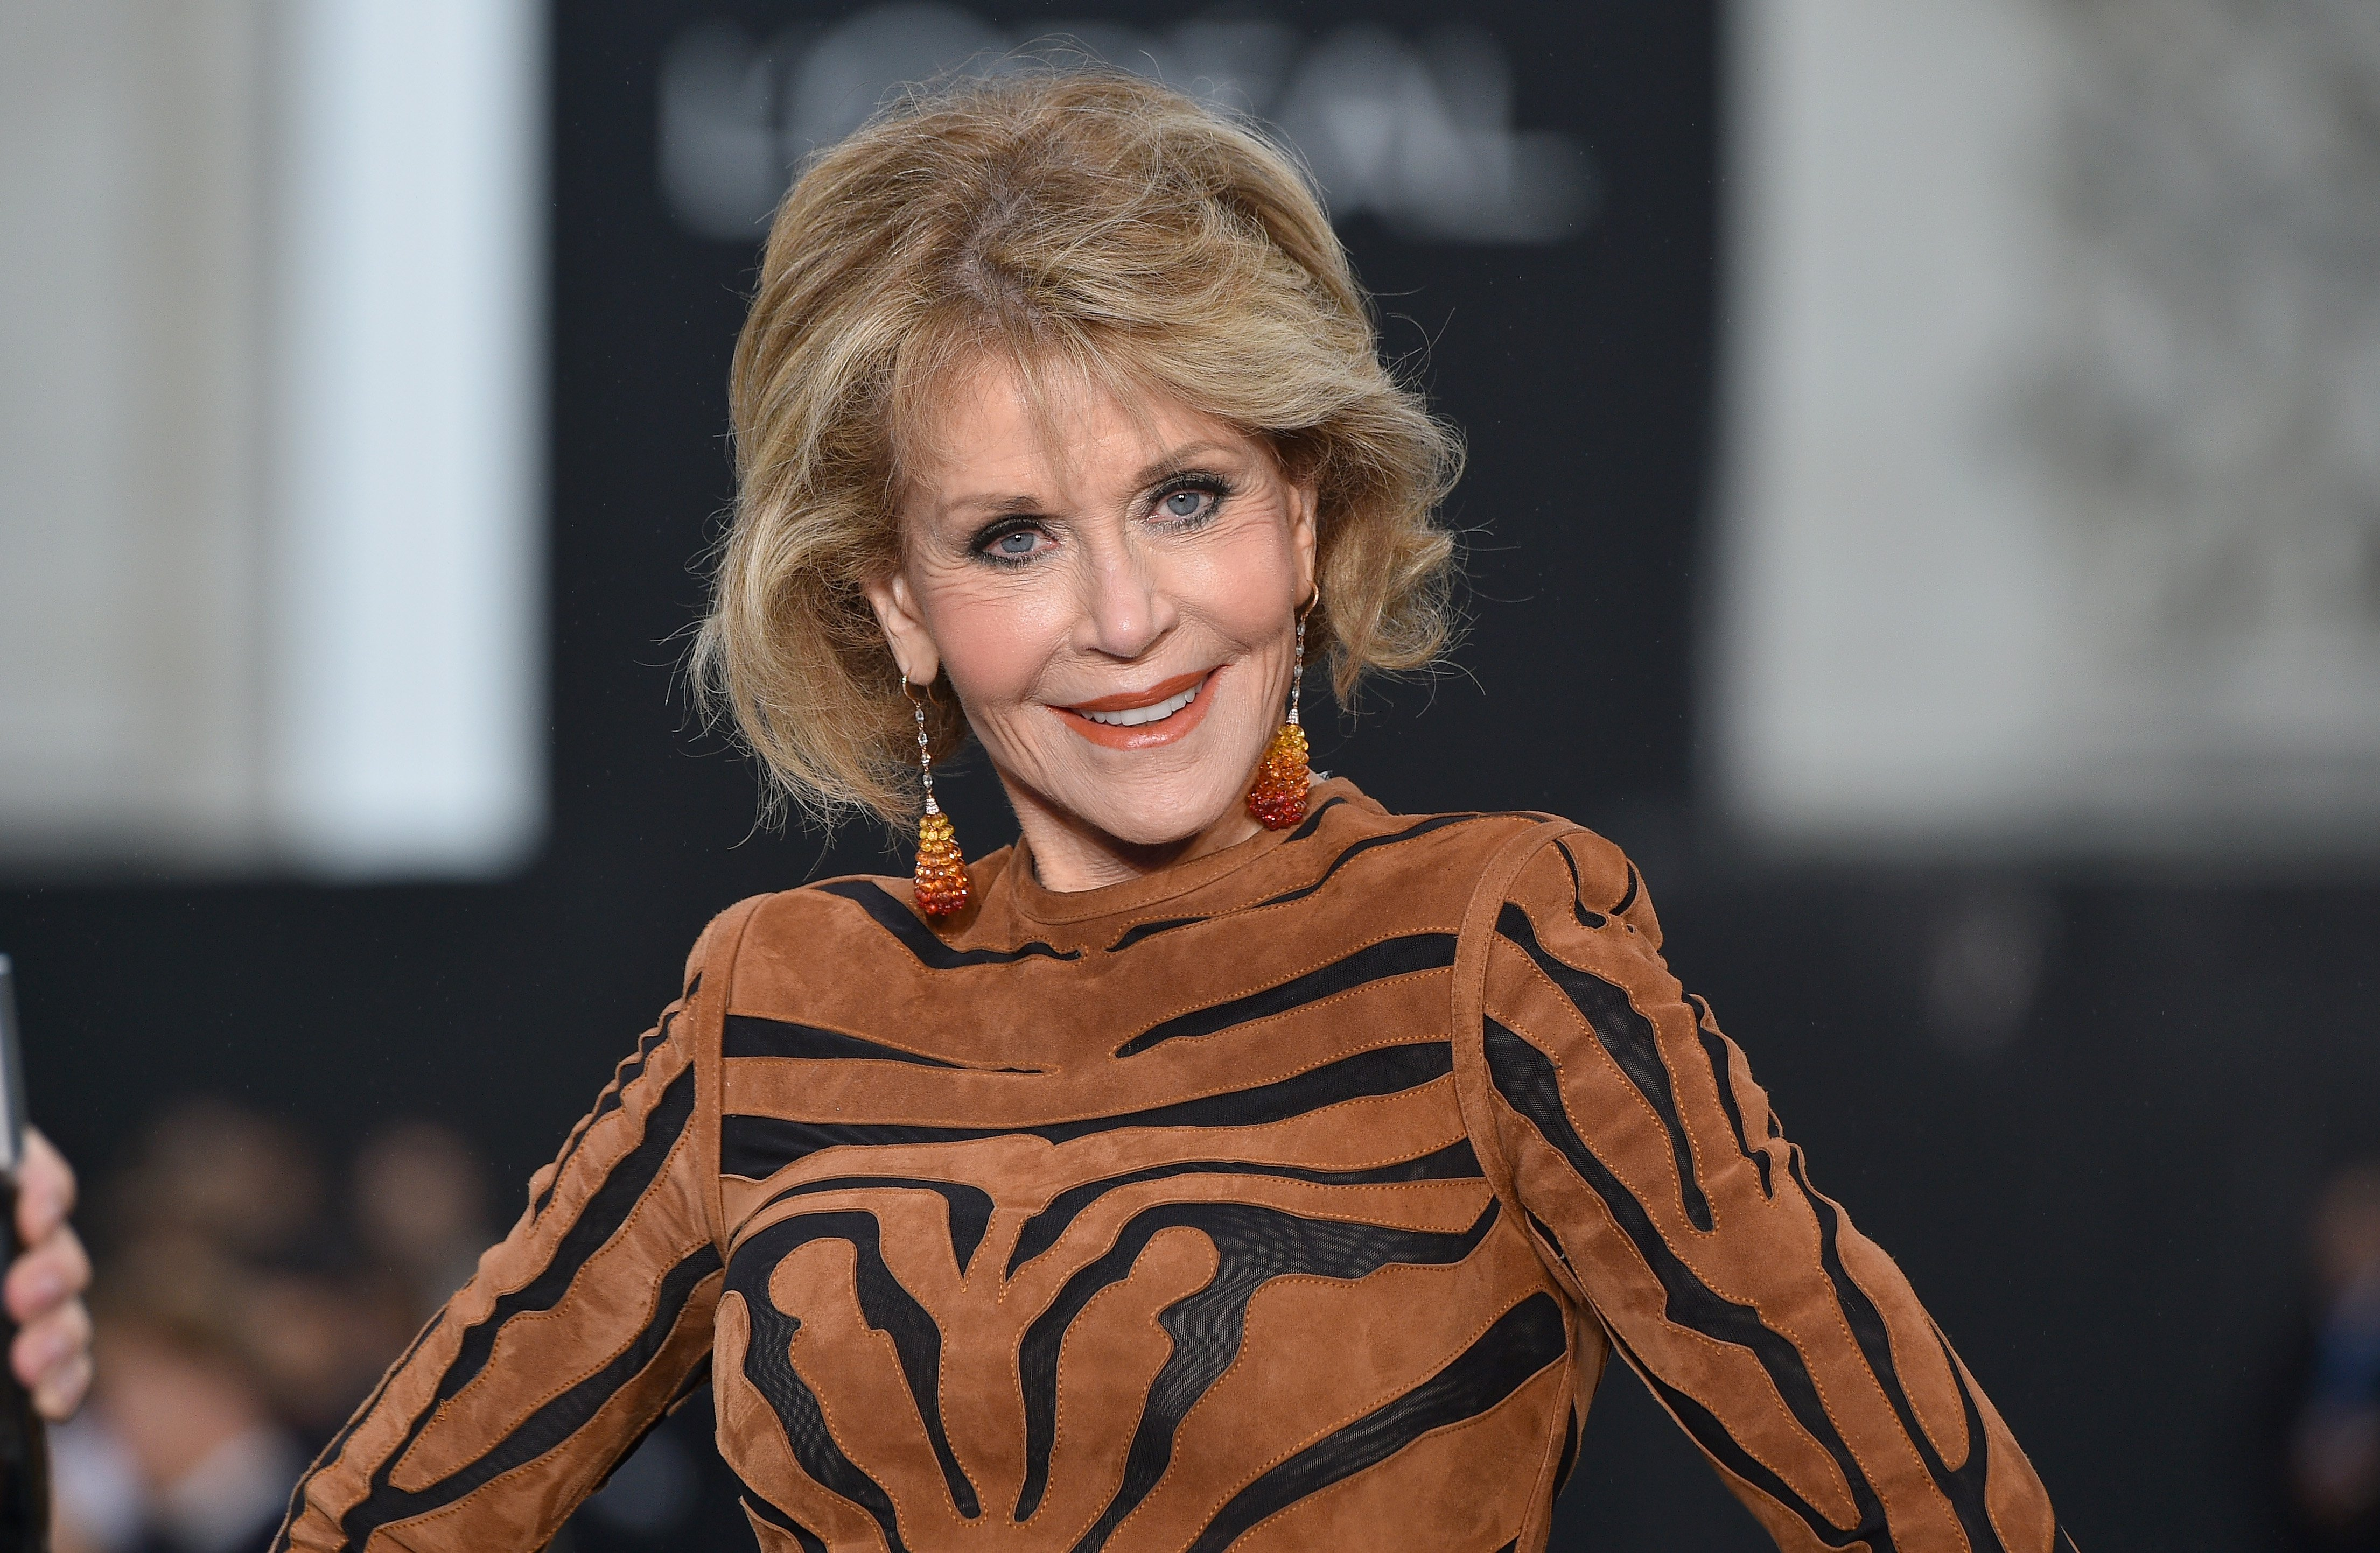 Jane Fonda at Paris Fashion Week at Avenue Des Champs Elysees on October 1, 2017 | Photo: GettyImages